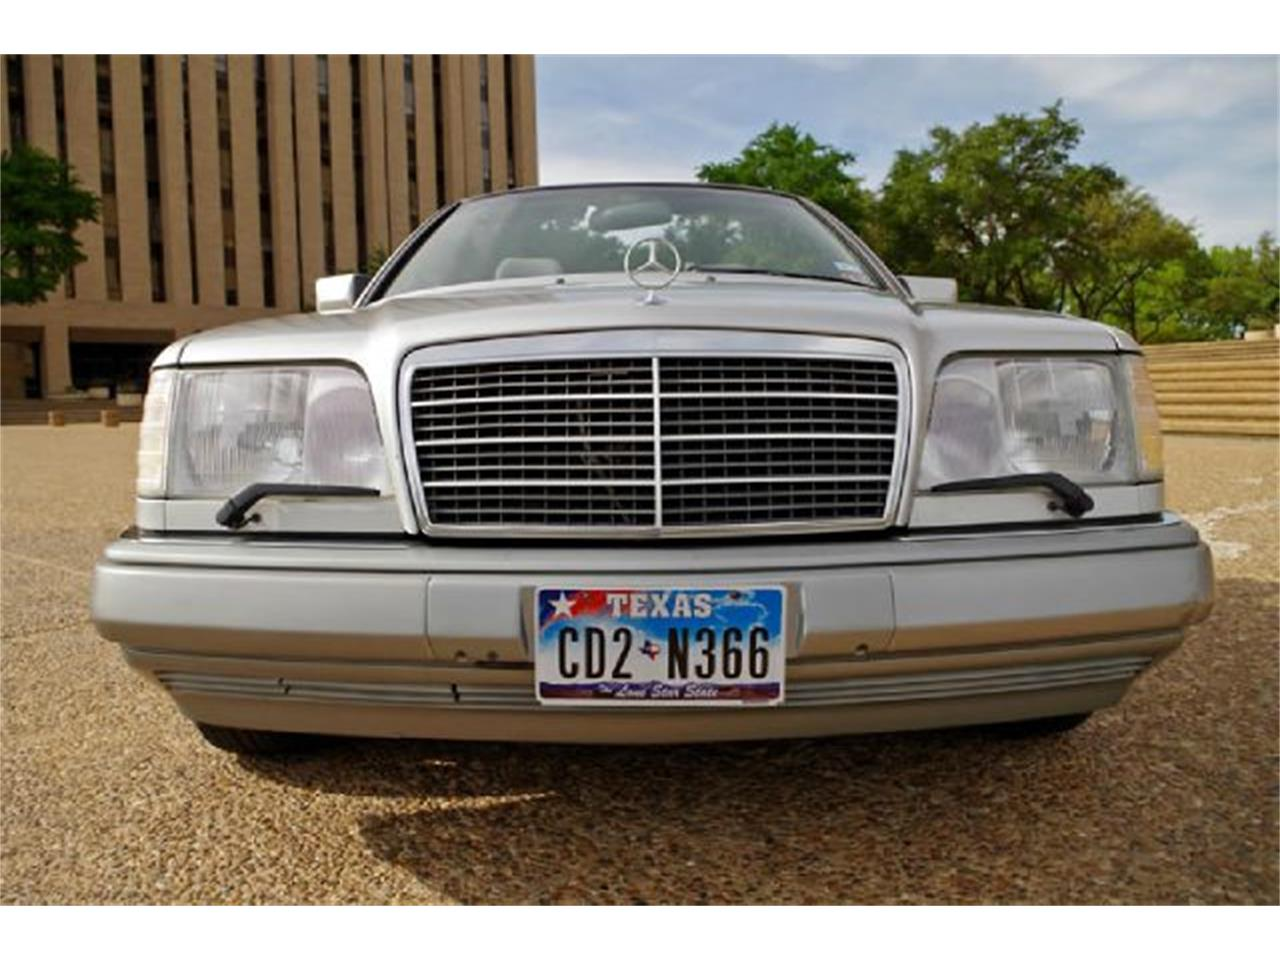 Large Picture of '95 Mercedes-Benz E-Class located in Fort Worth Texas - $8,995.00 Offered by ABC Dealer TEST - I36A